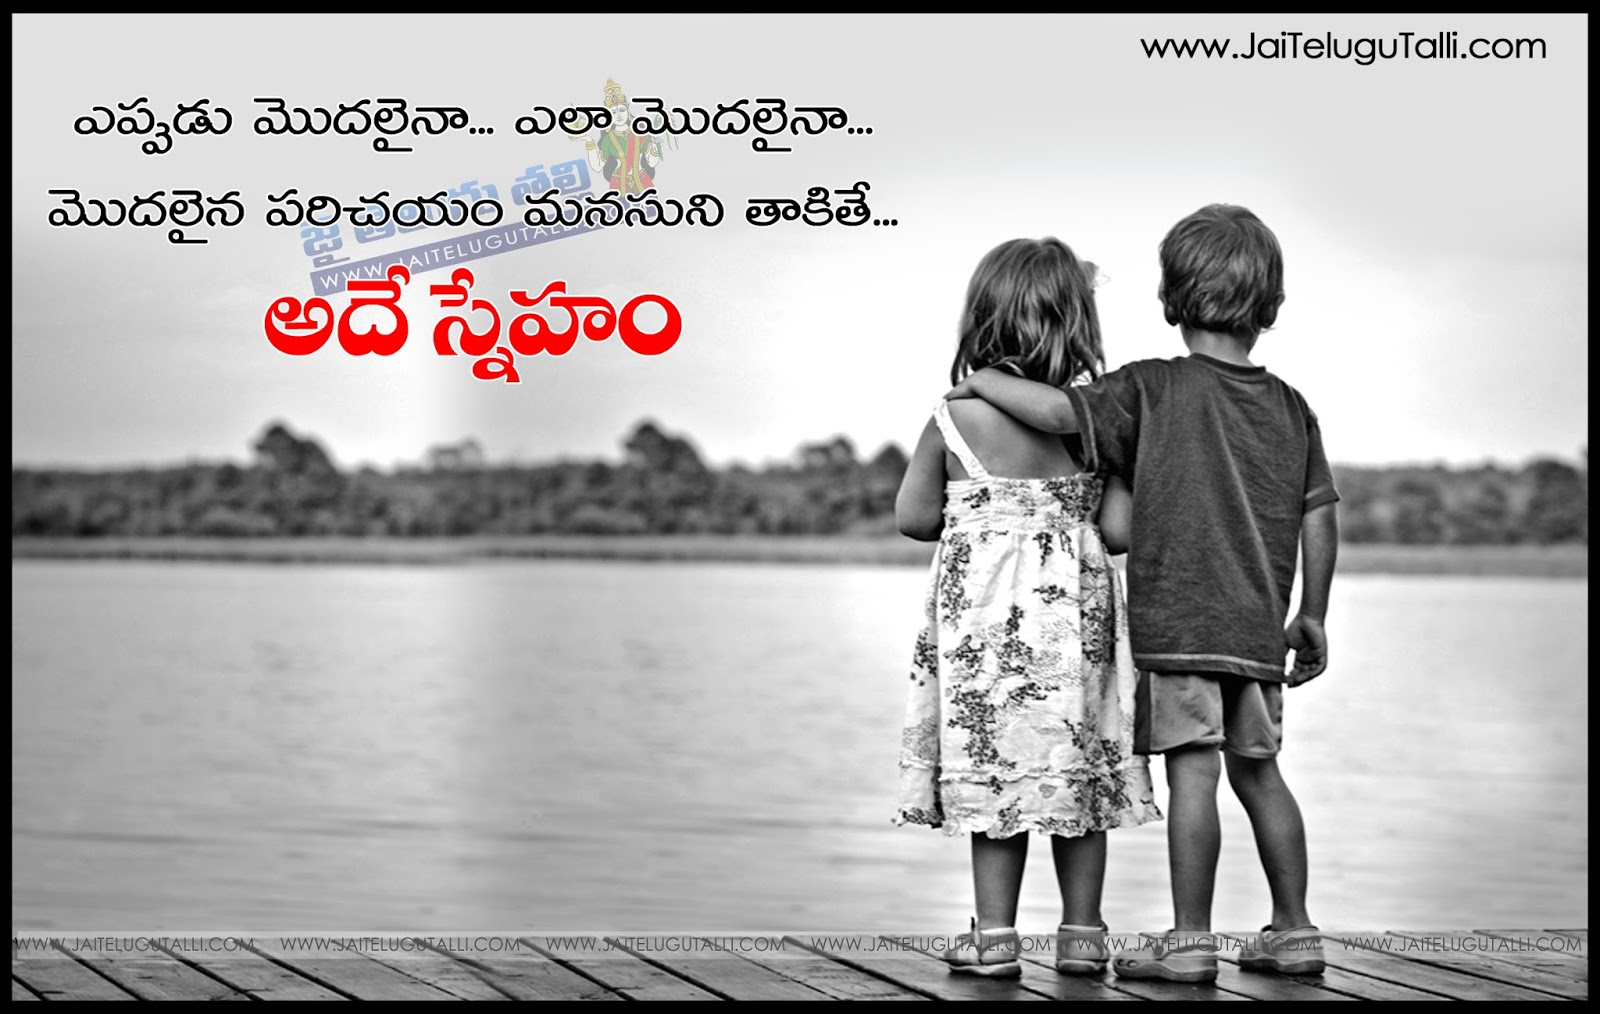 Motivational Thoughts Best Friendship Telugu Quotations Hd Wallpapers Motivational